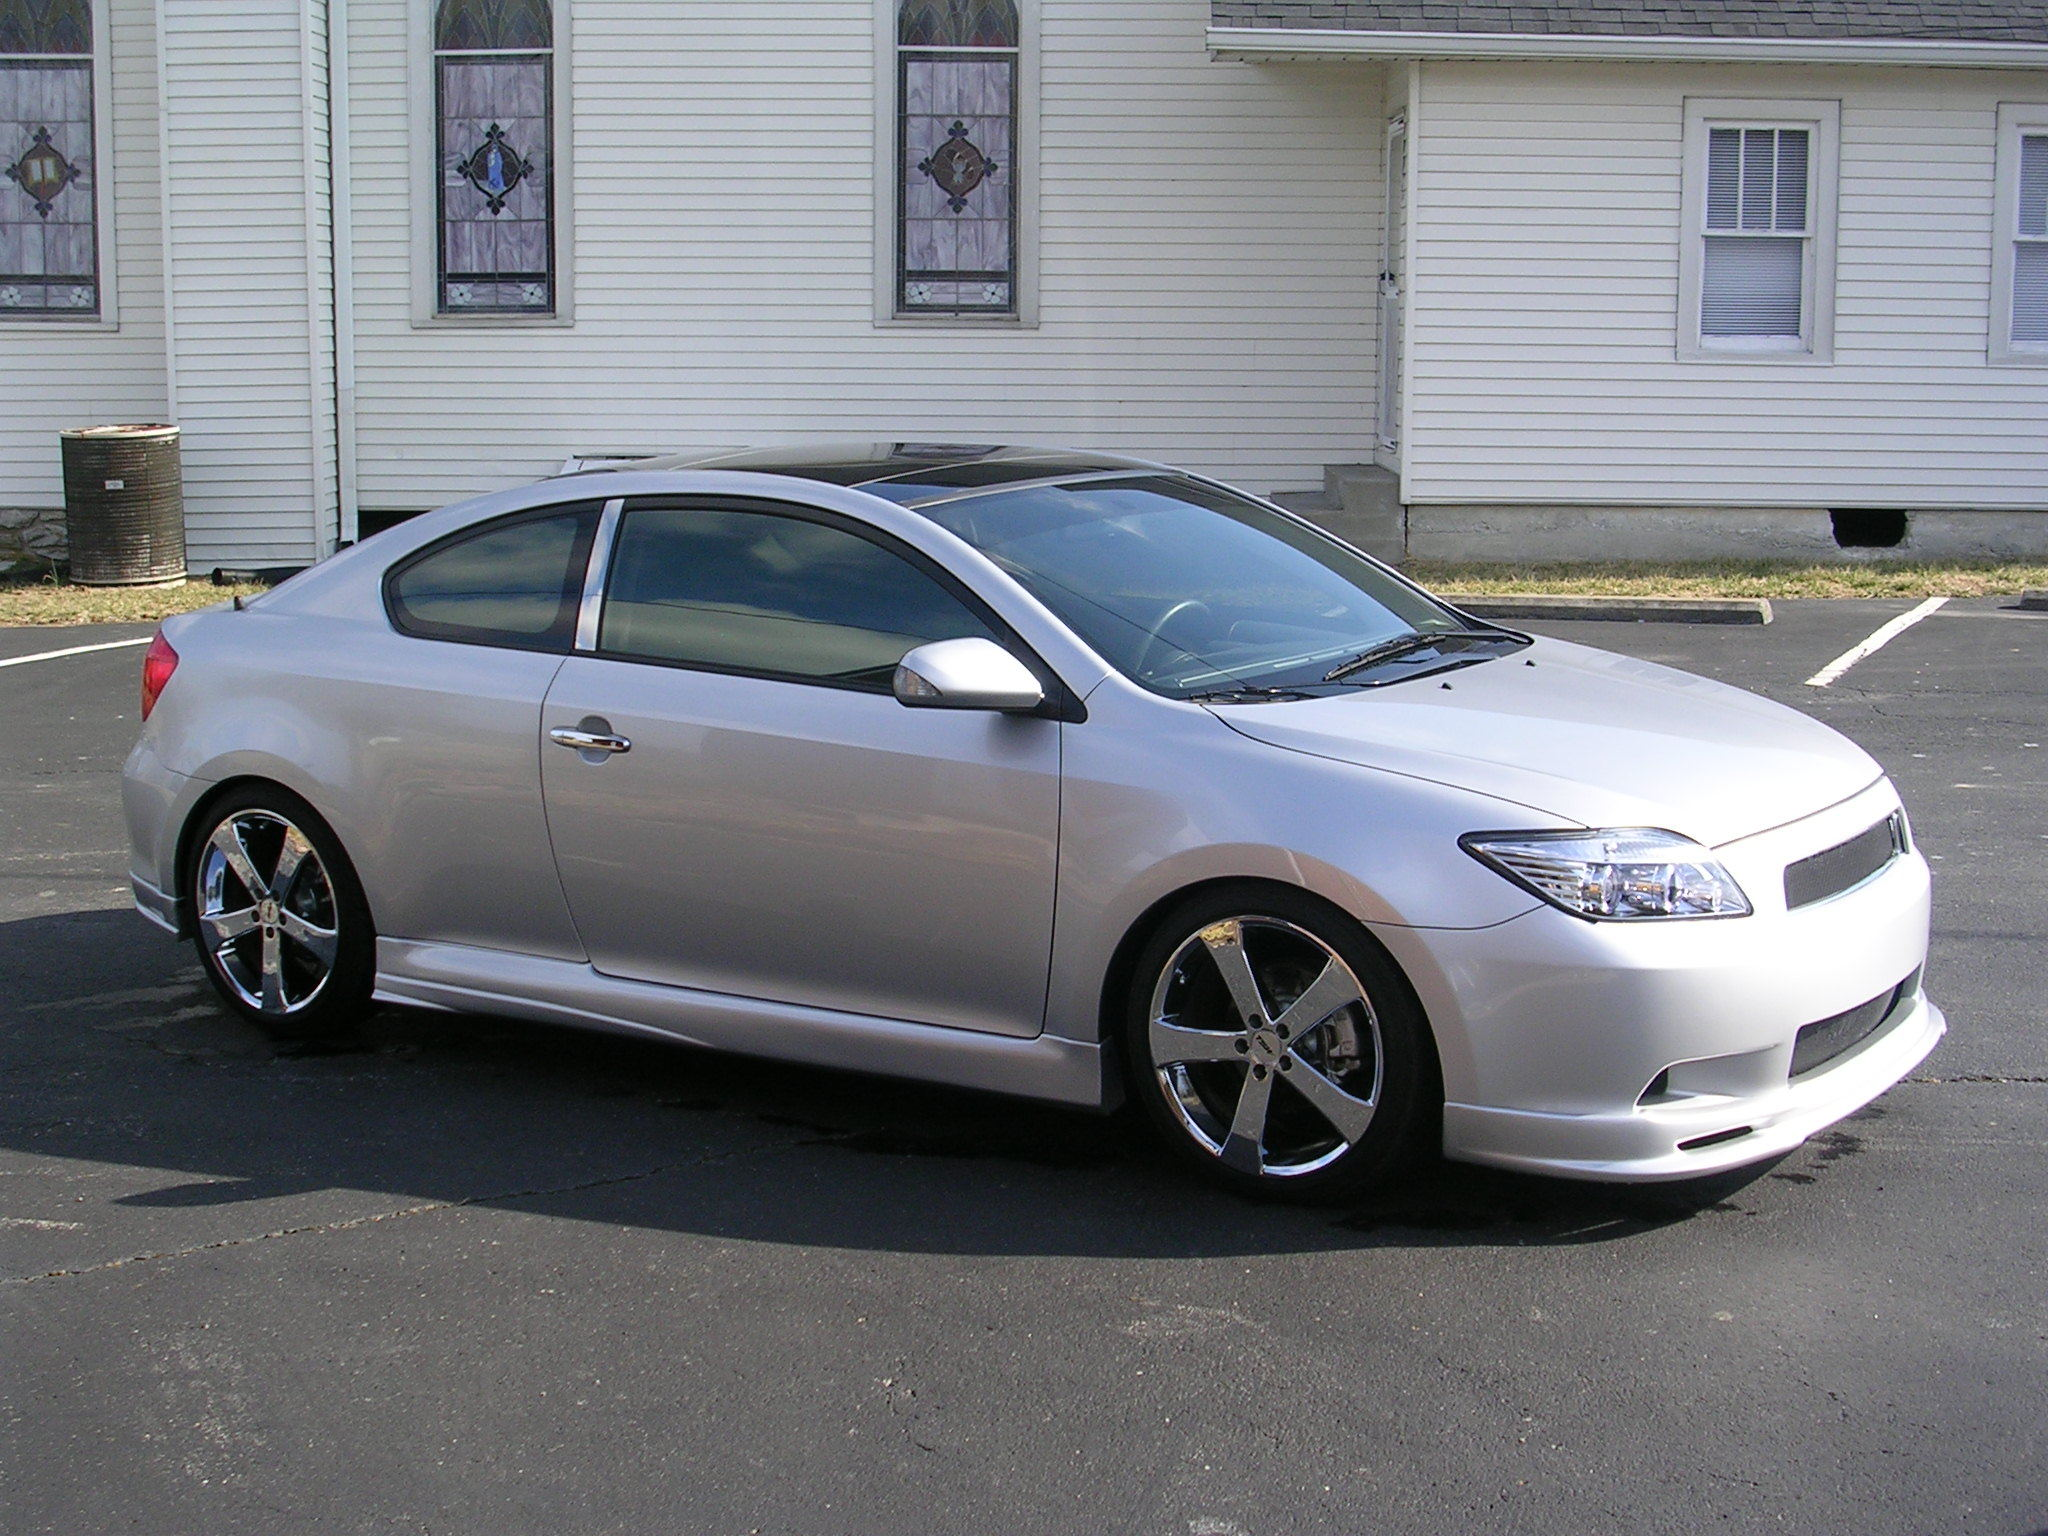 BigDScion's 2006 Scion tC